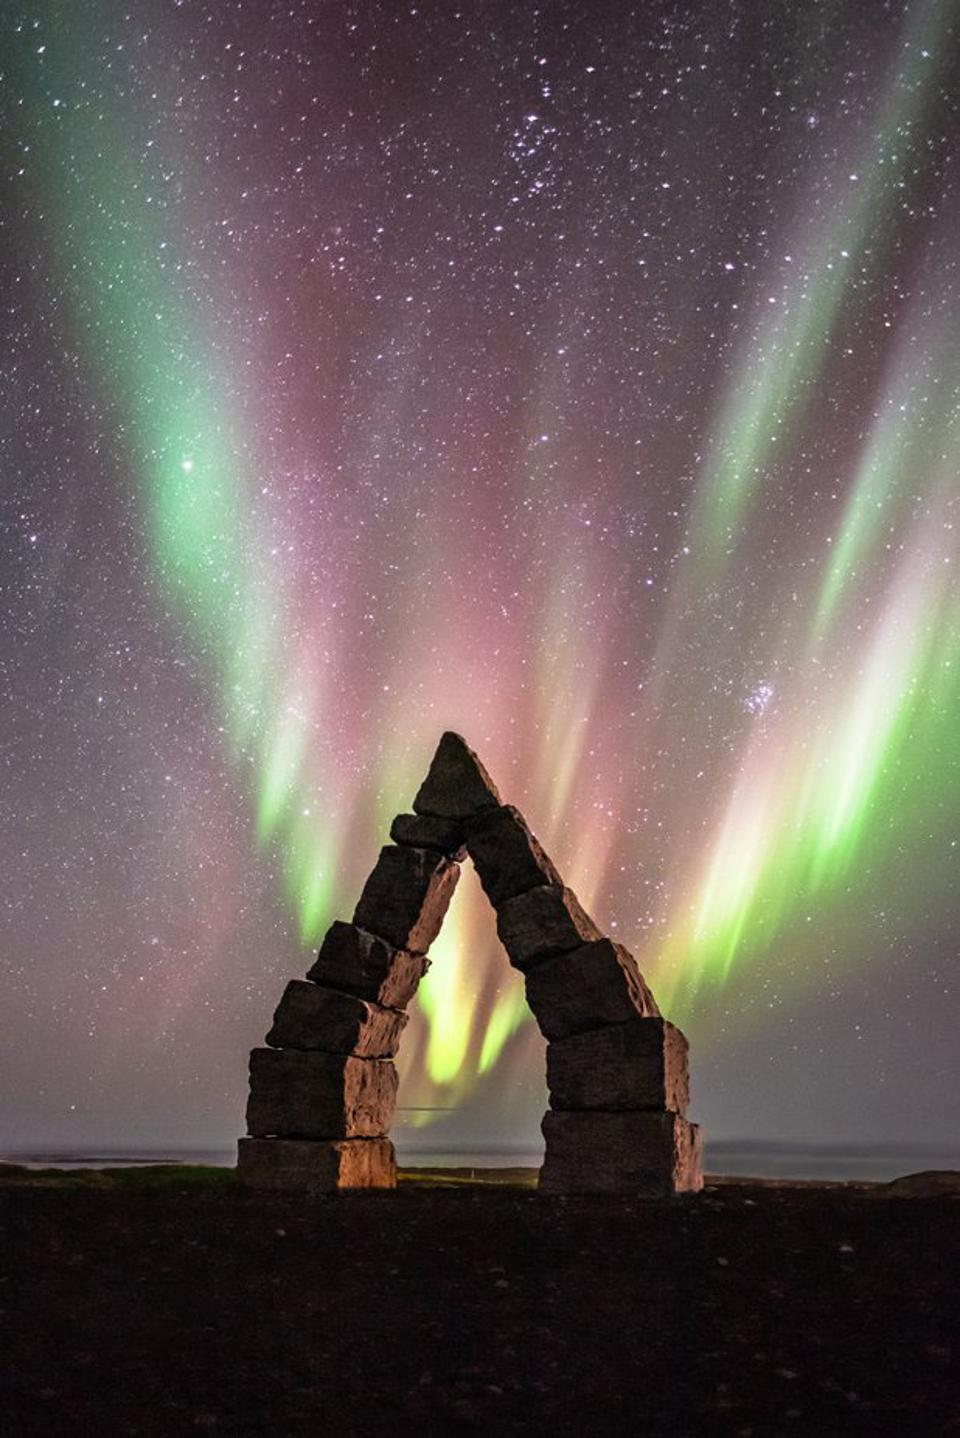 A image from Raufarhofn in Iceland, by James Rushforth.